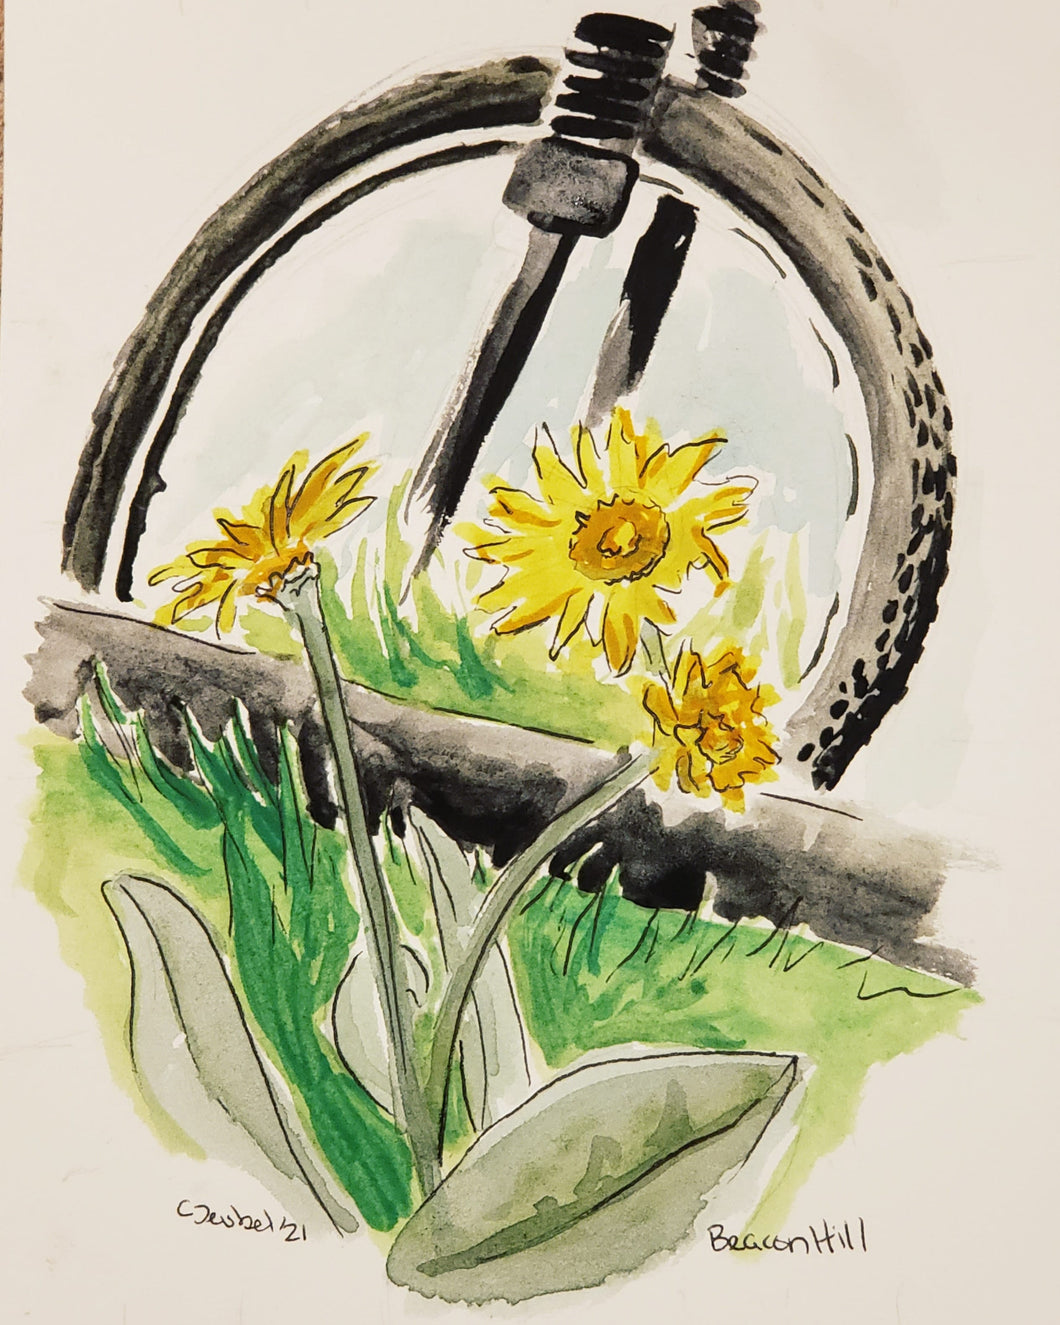 Beacon Hill Mountain Bike Park Watercolor Sketch